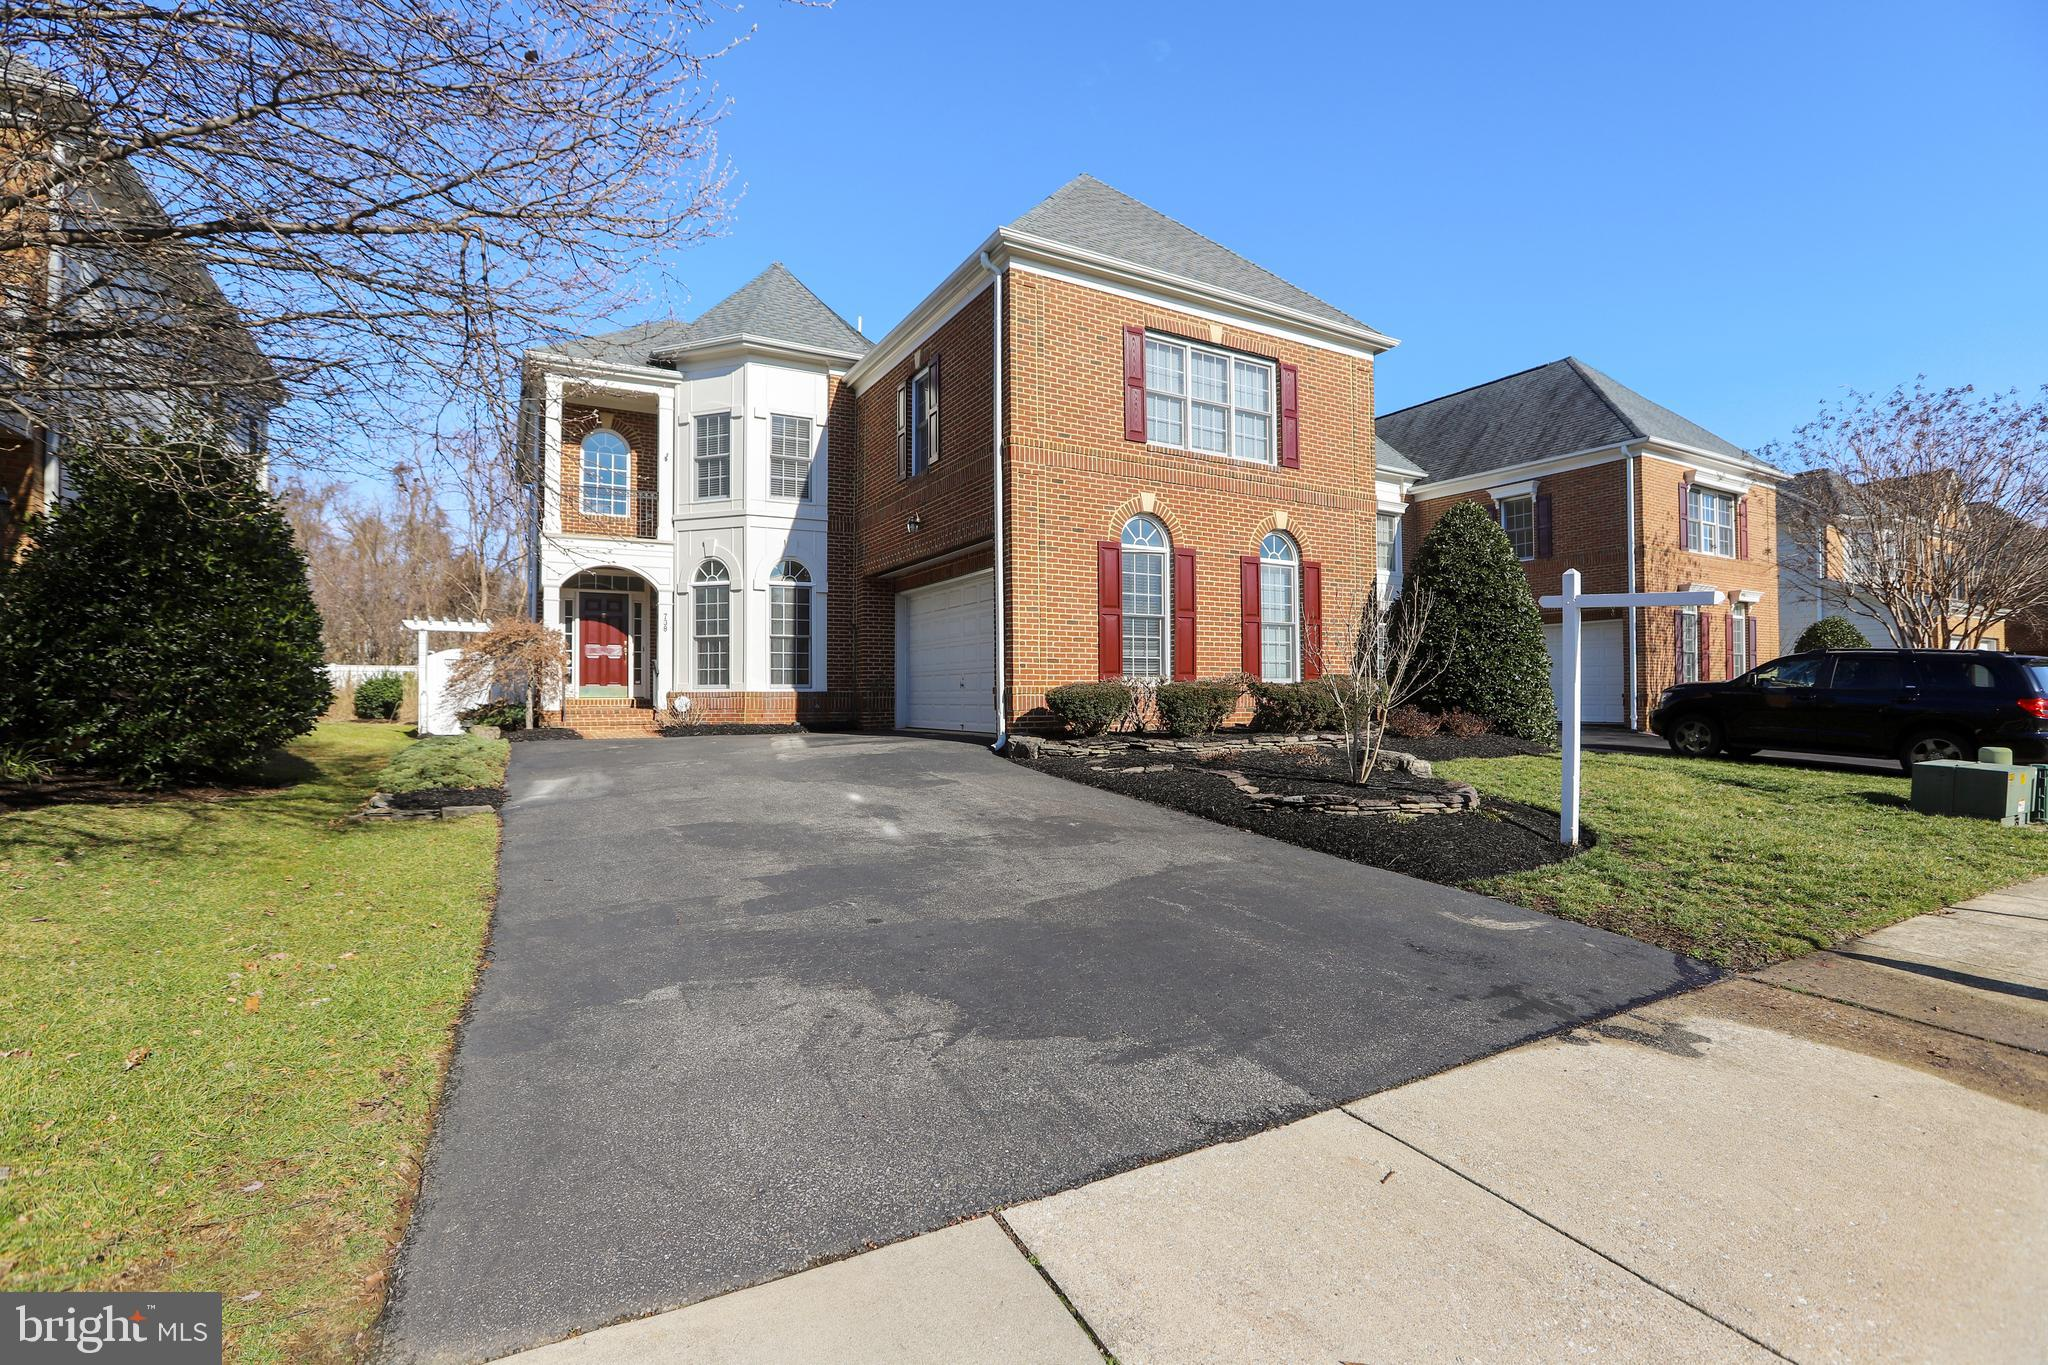 738 Crisfield Wy, Annapolis, MD, 21401